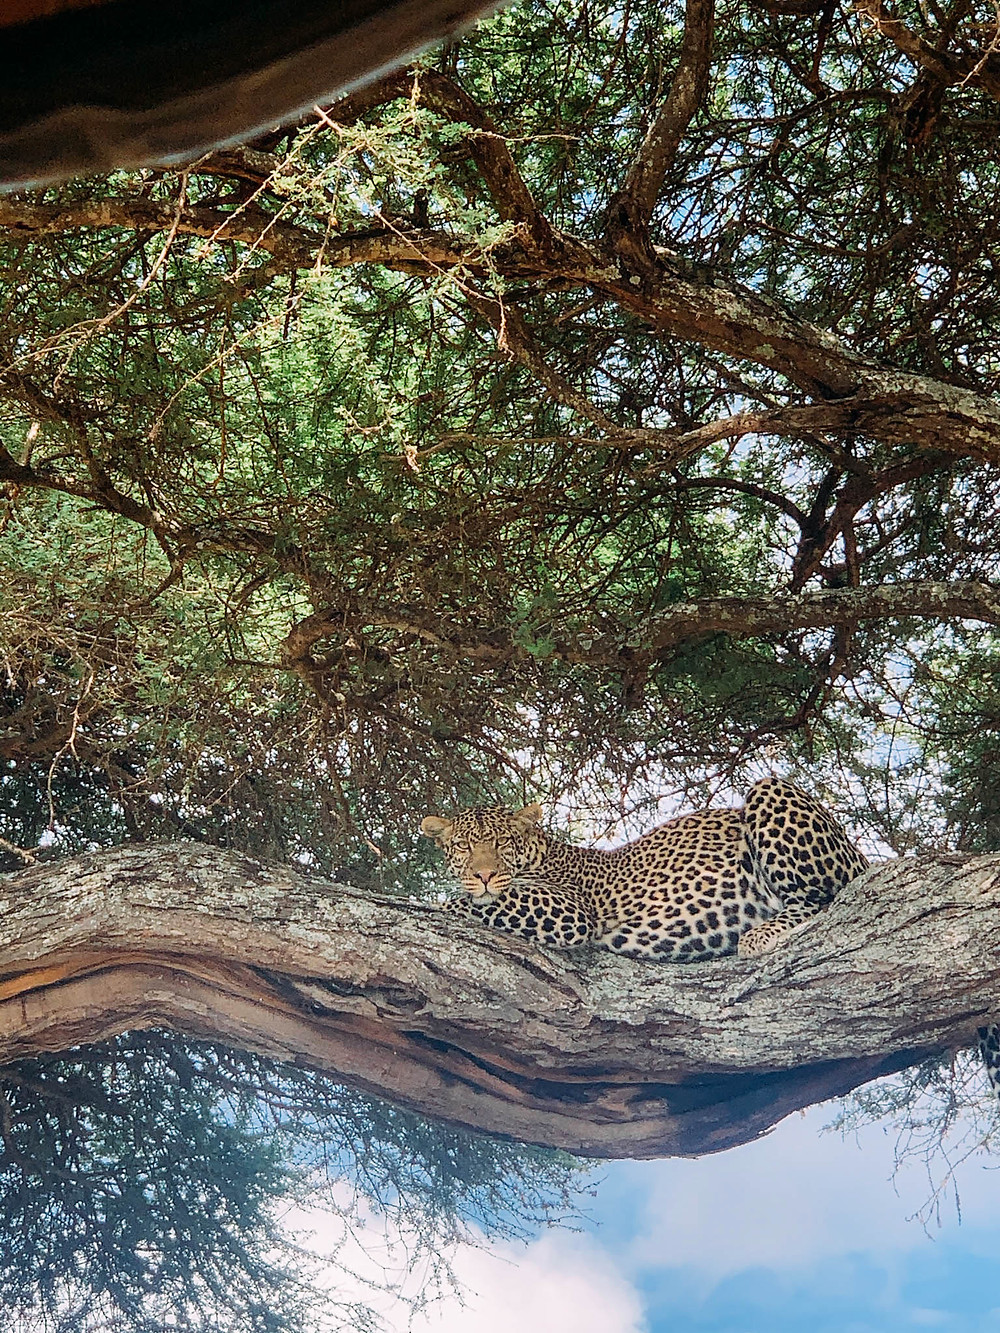 Too close for comfort with a leopard in Tarangire